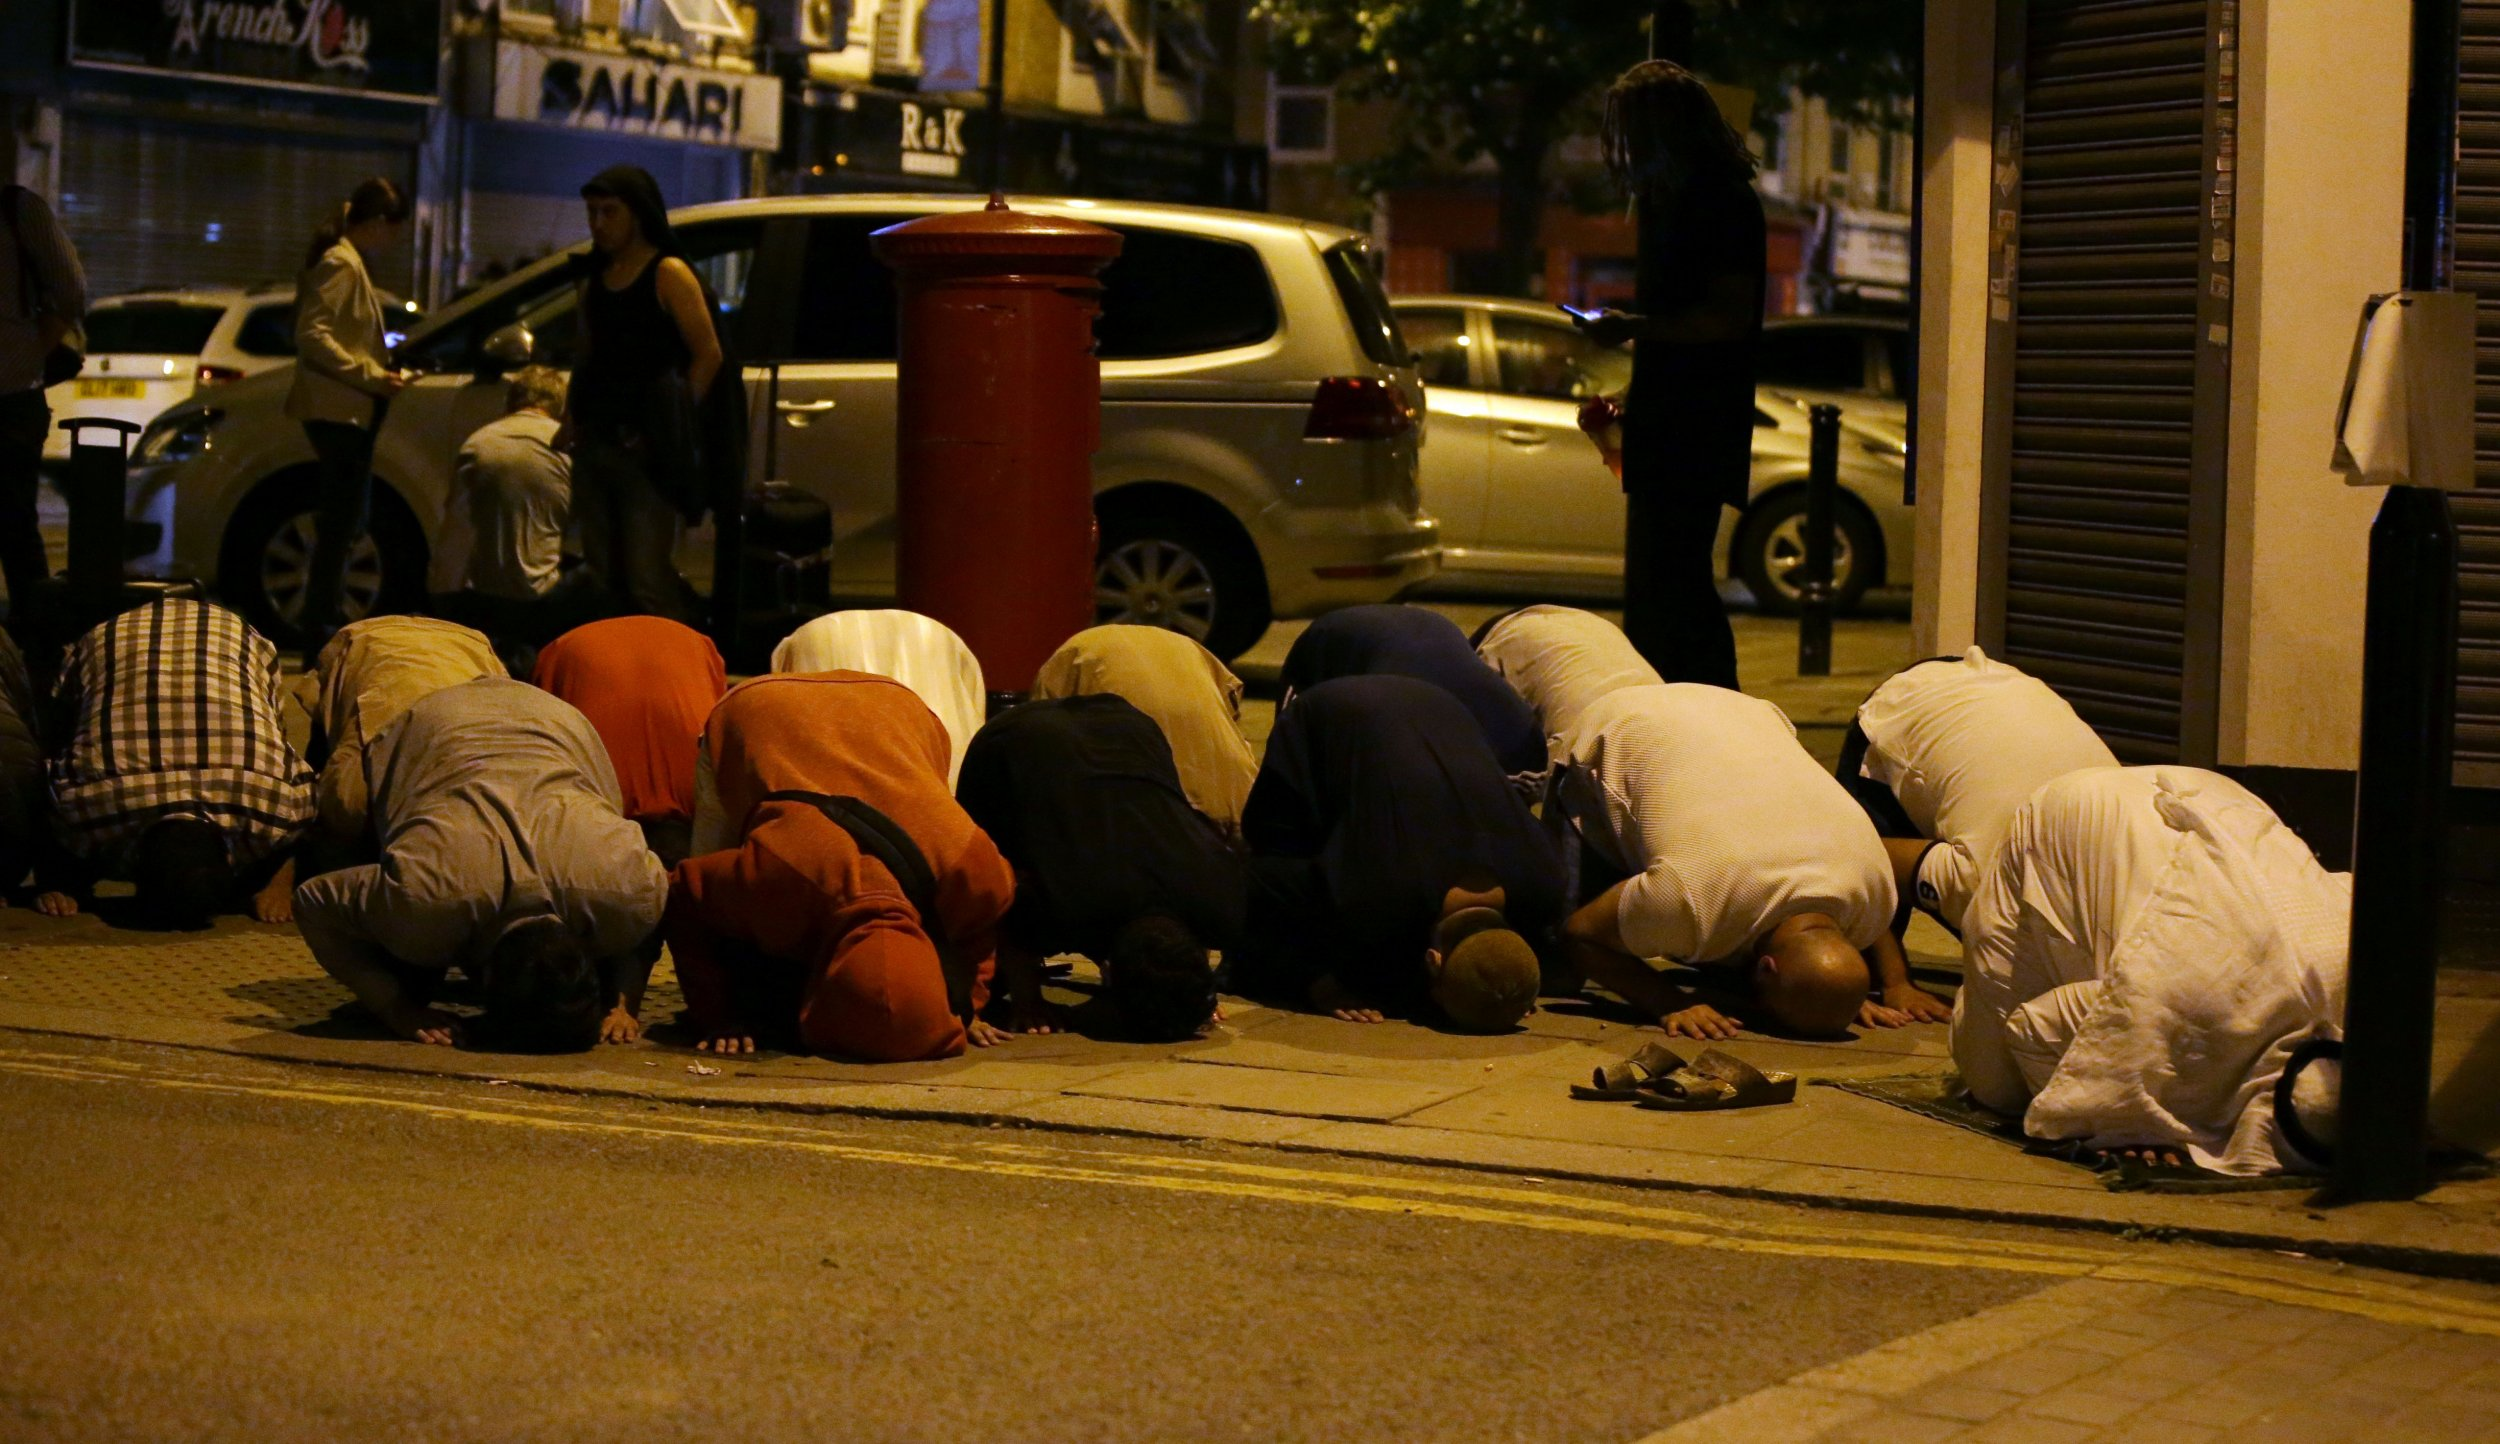 Muslim worshippers North London